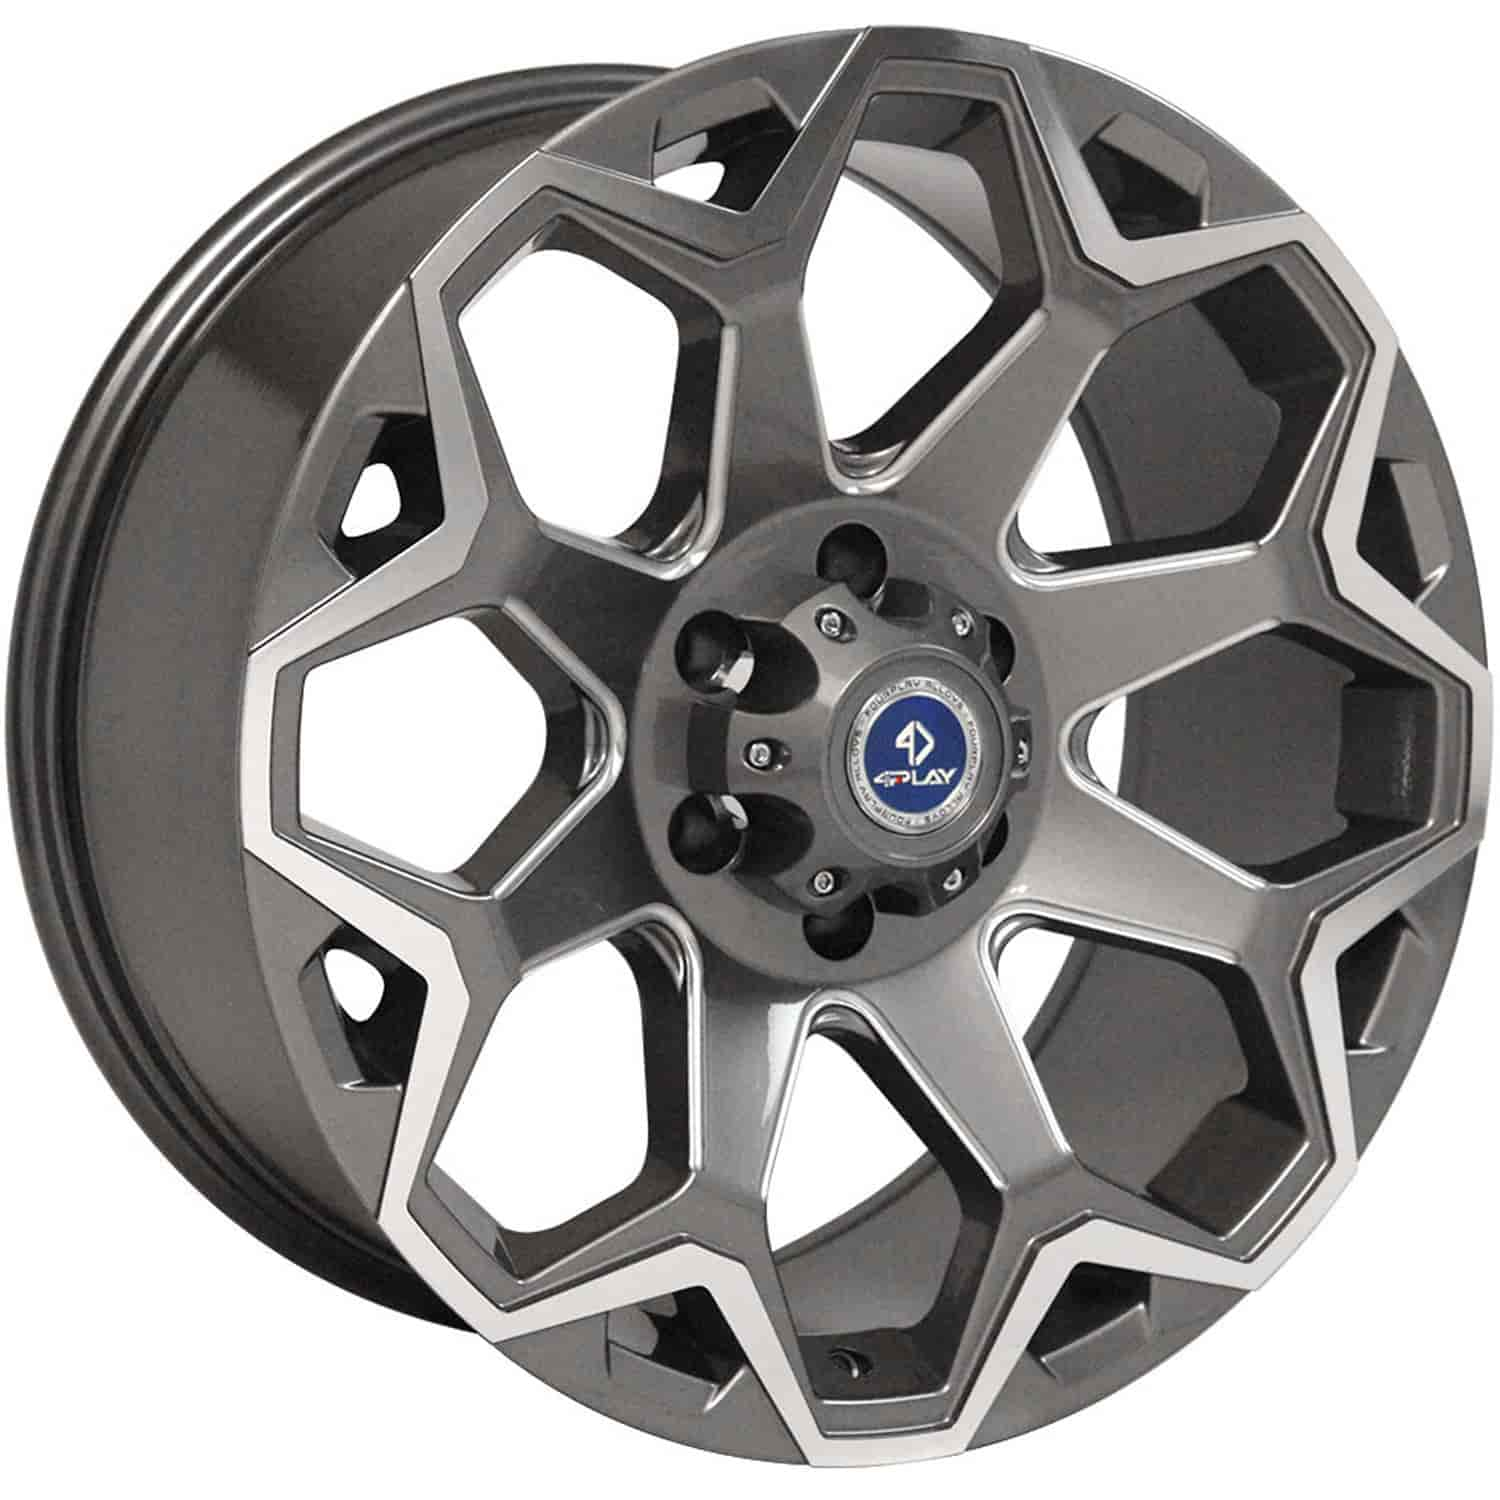 OE Wheels 9506644